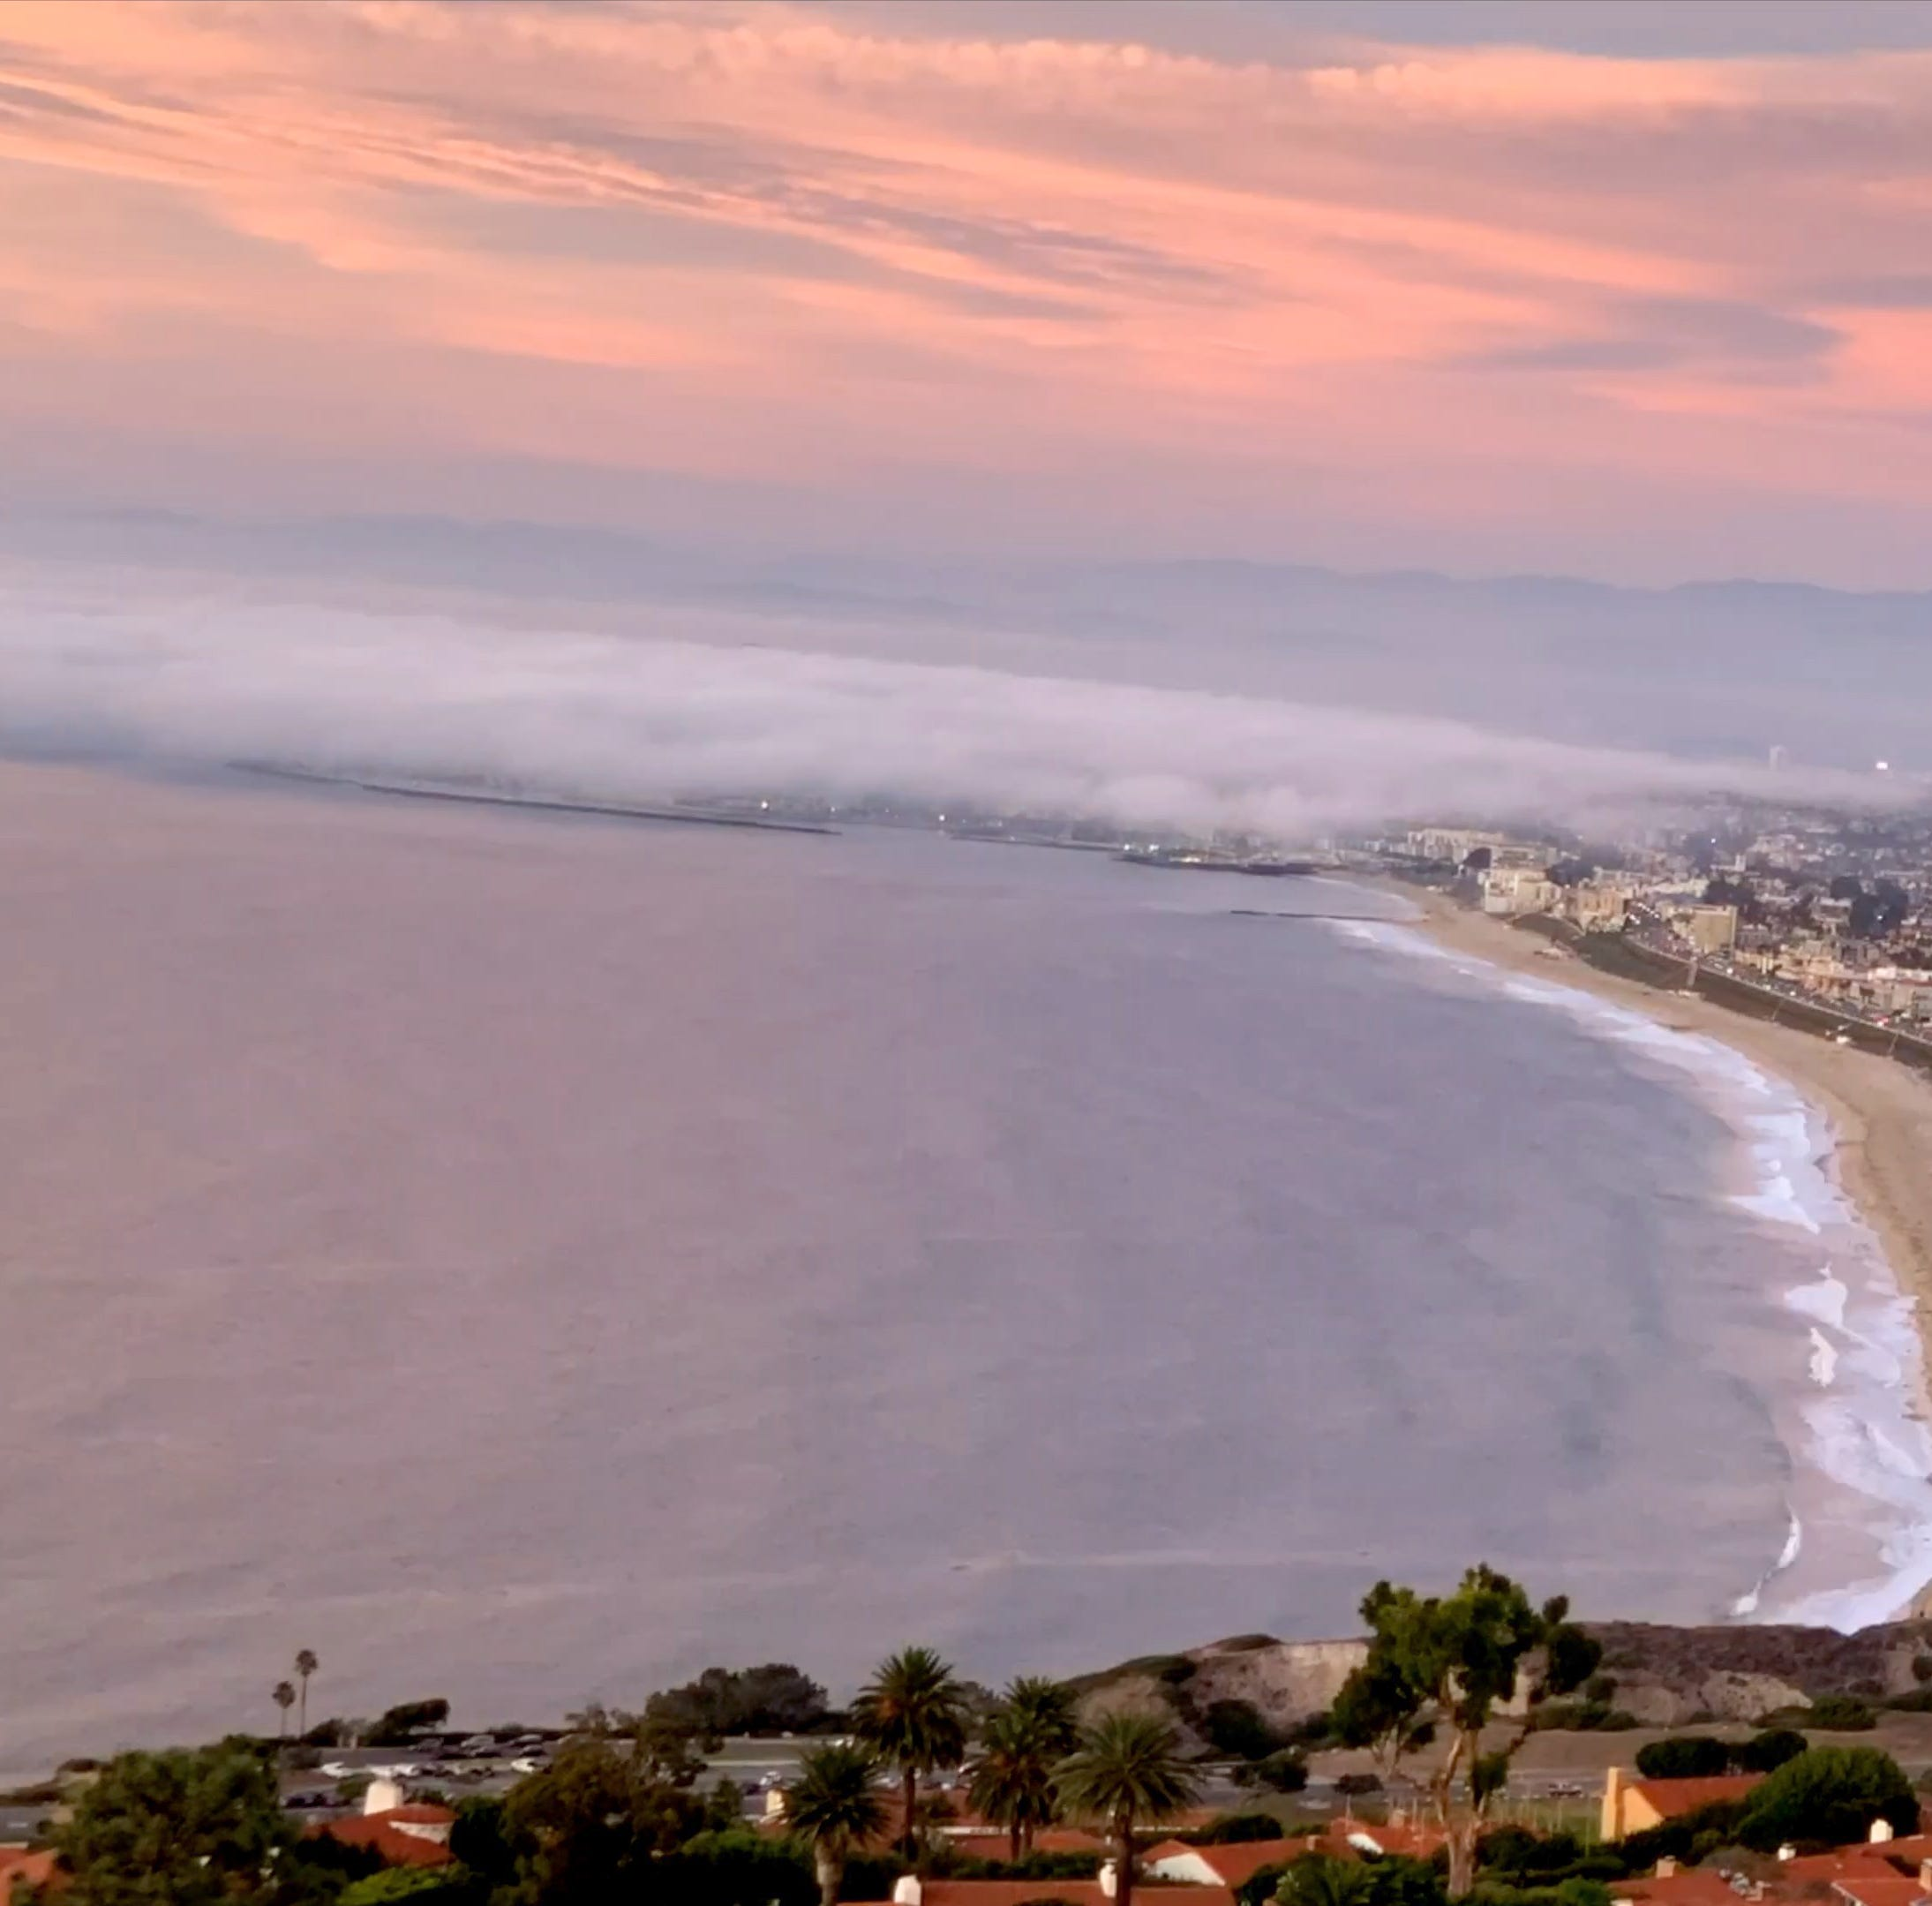 The spot in Palos Verdes Estates for time-lapse videos